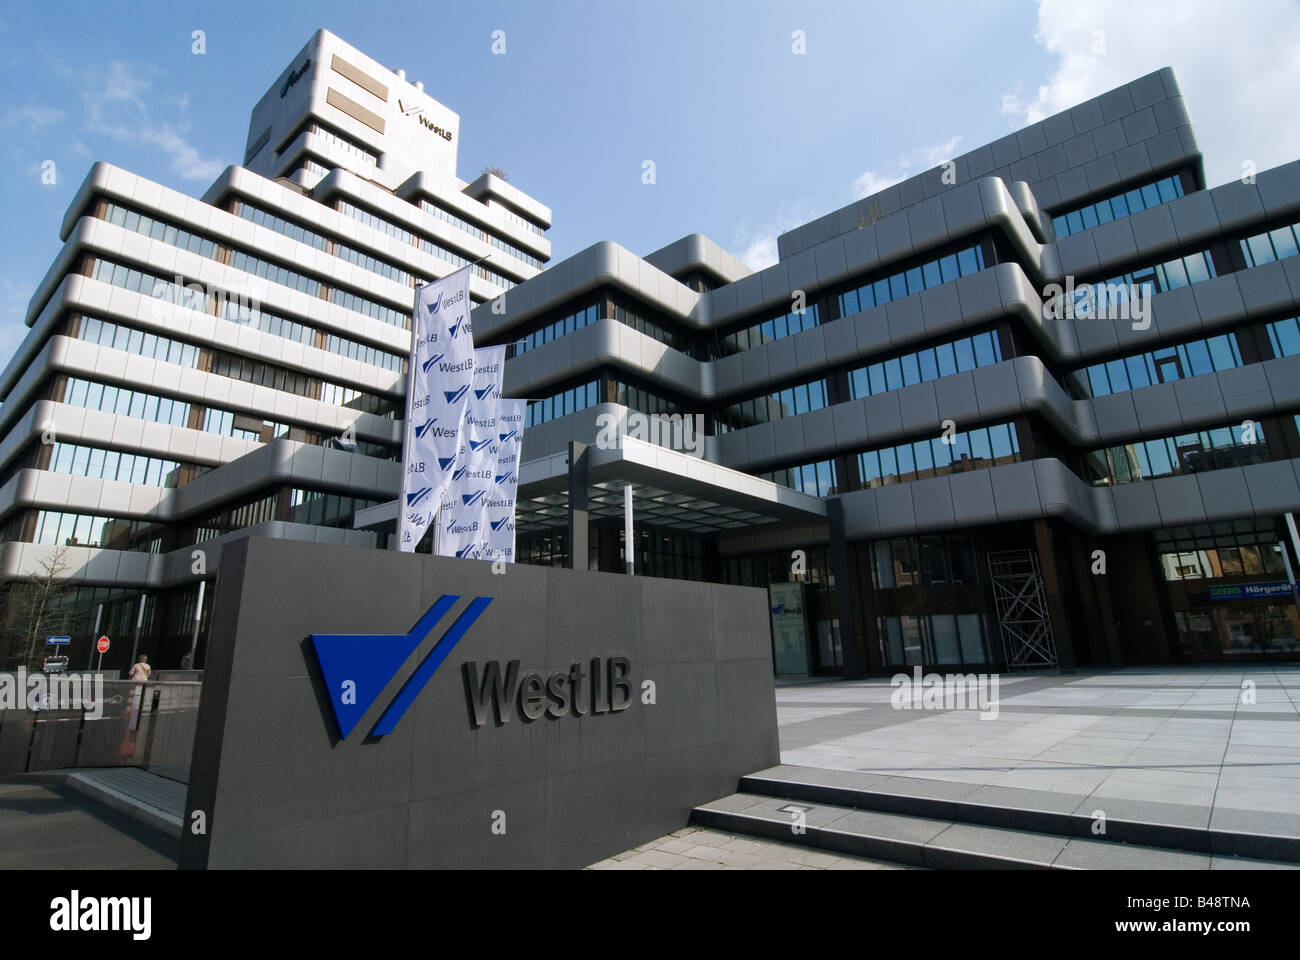 Headquarter of the West LB in Duesseldorf Germany - Stock Image